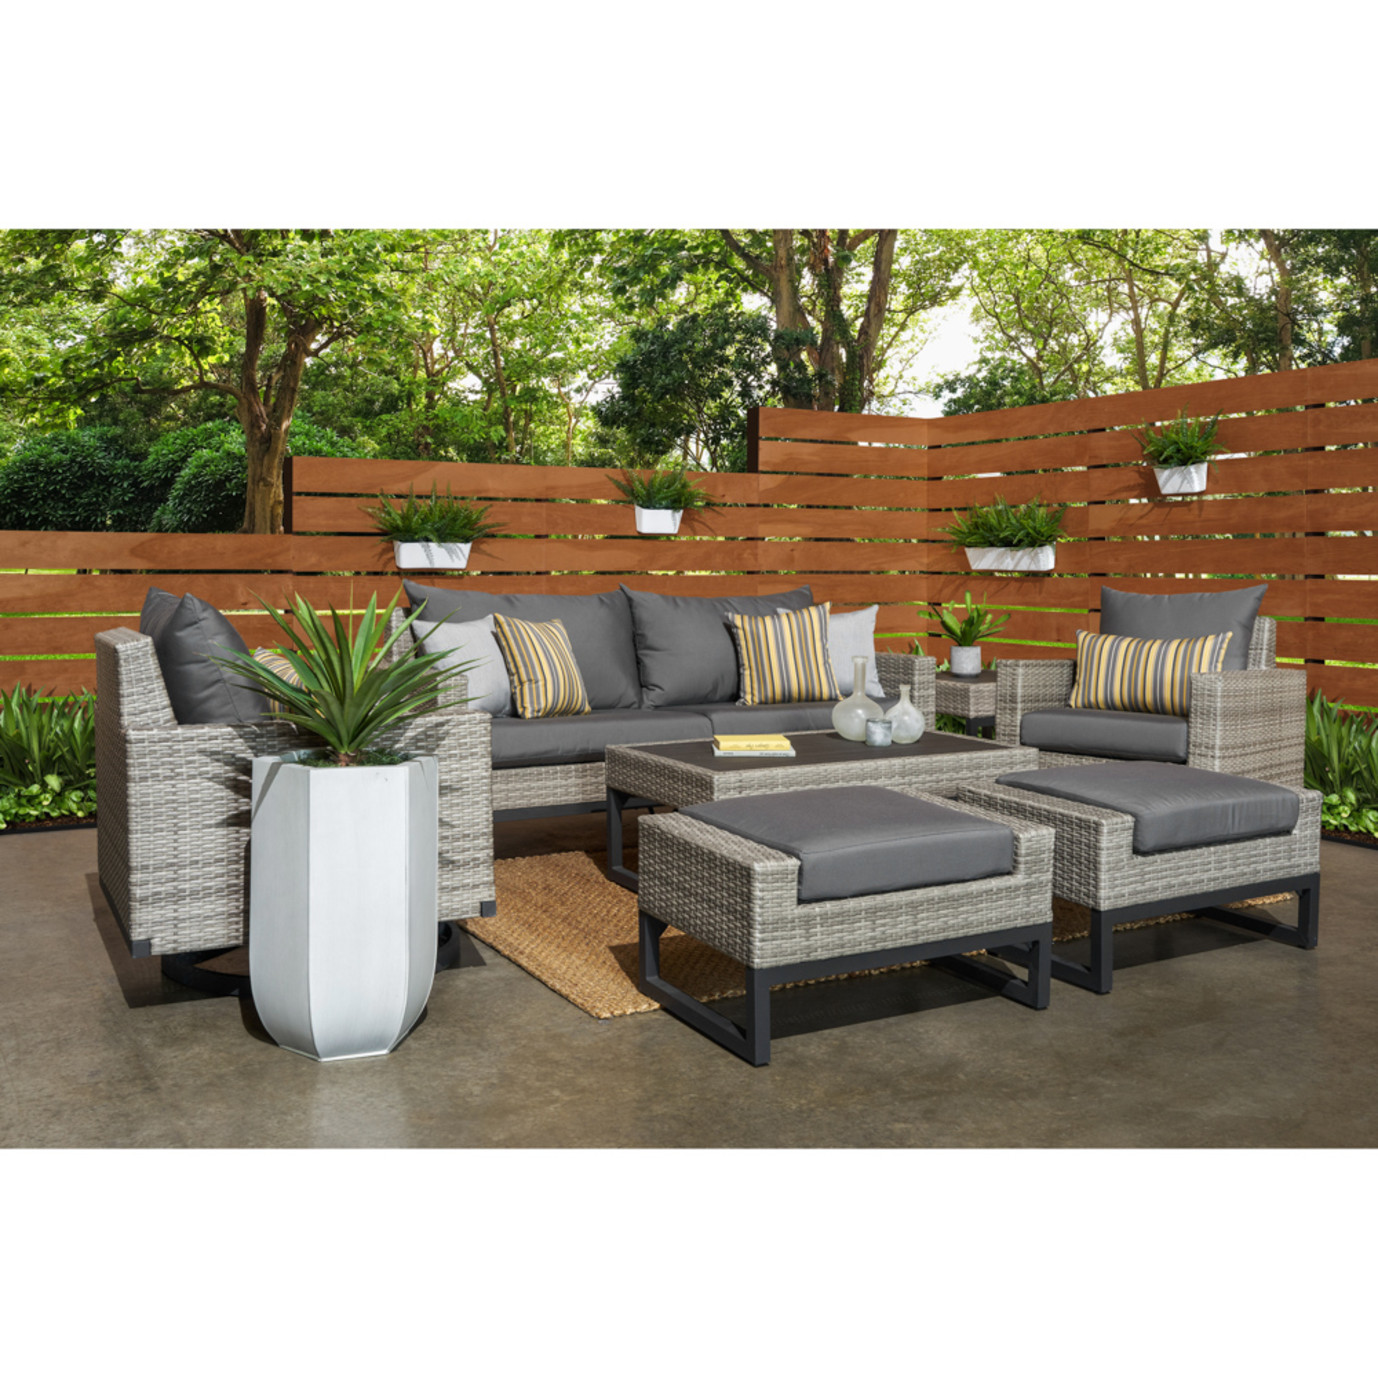 Milo™ Grey 7pc Motion Deep Seating Set - Charcoal Grey